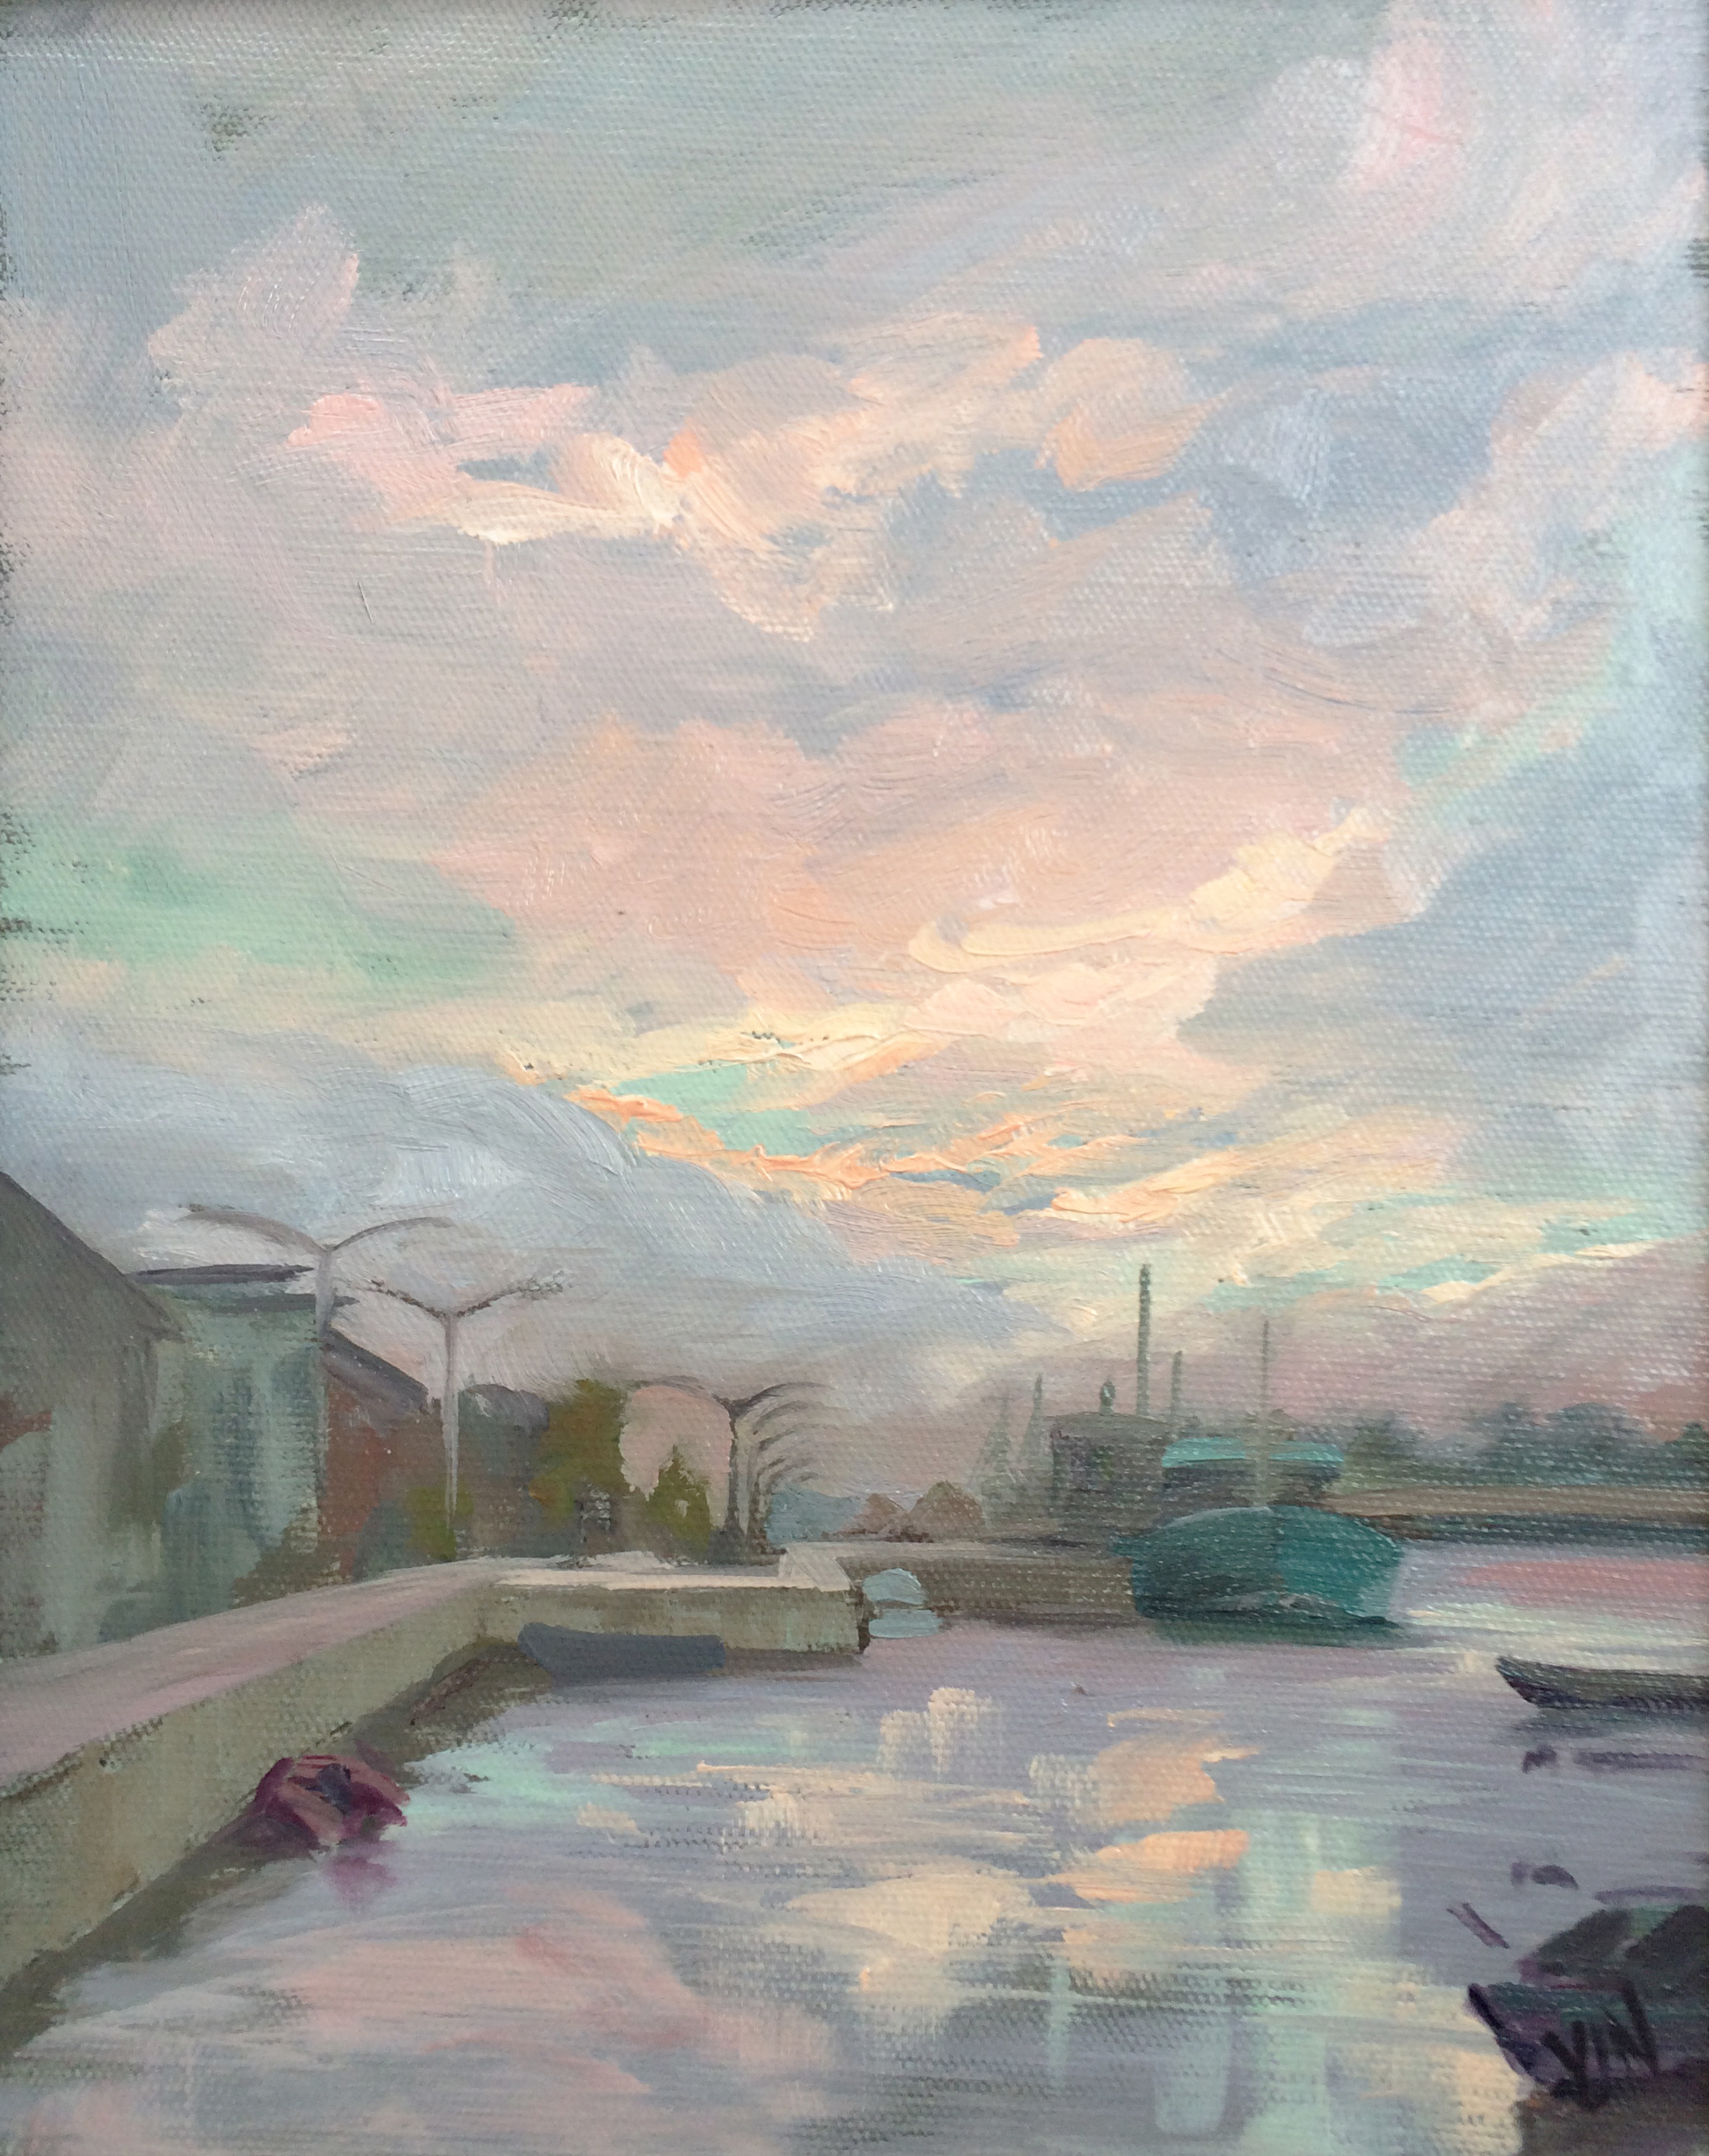 Wexford Quay, painted en route to the pub - again!